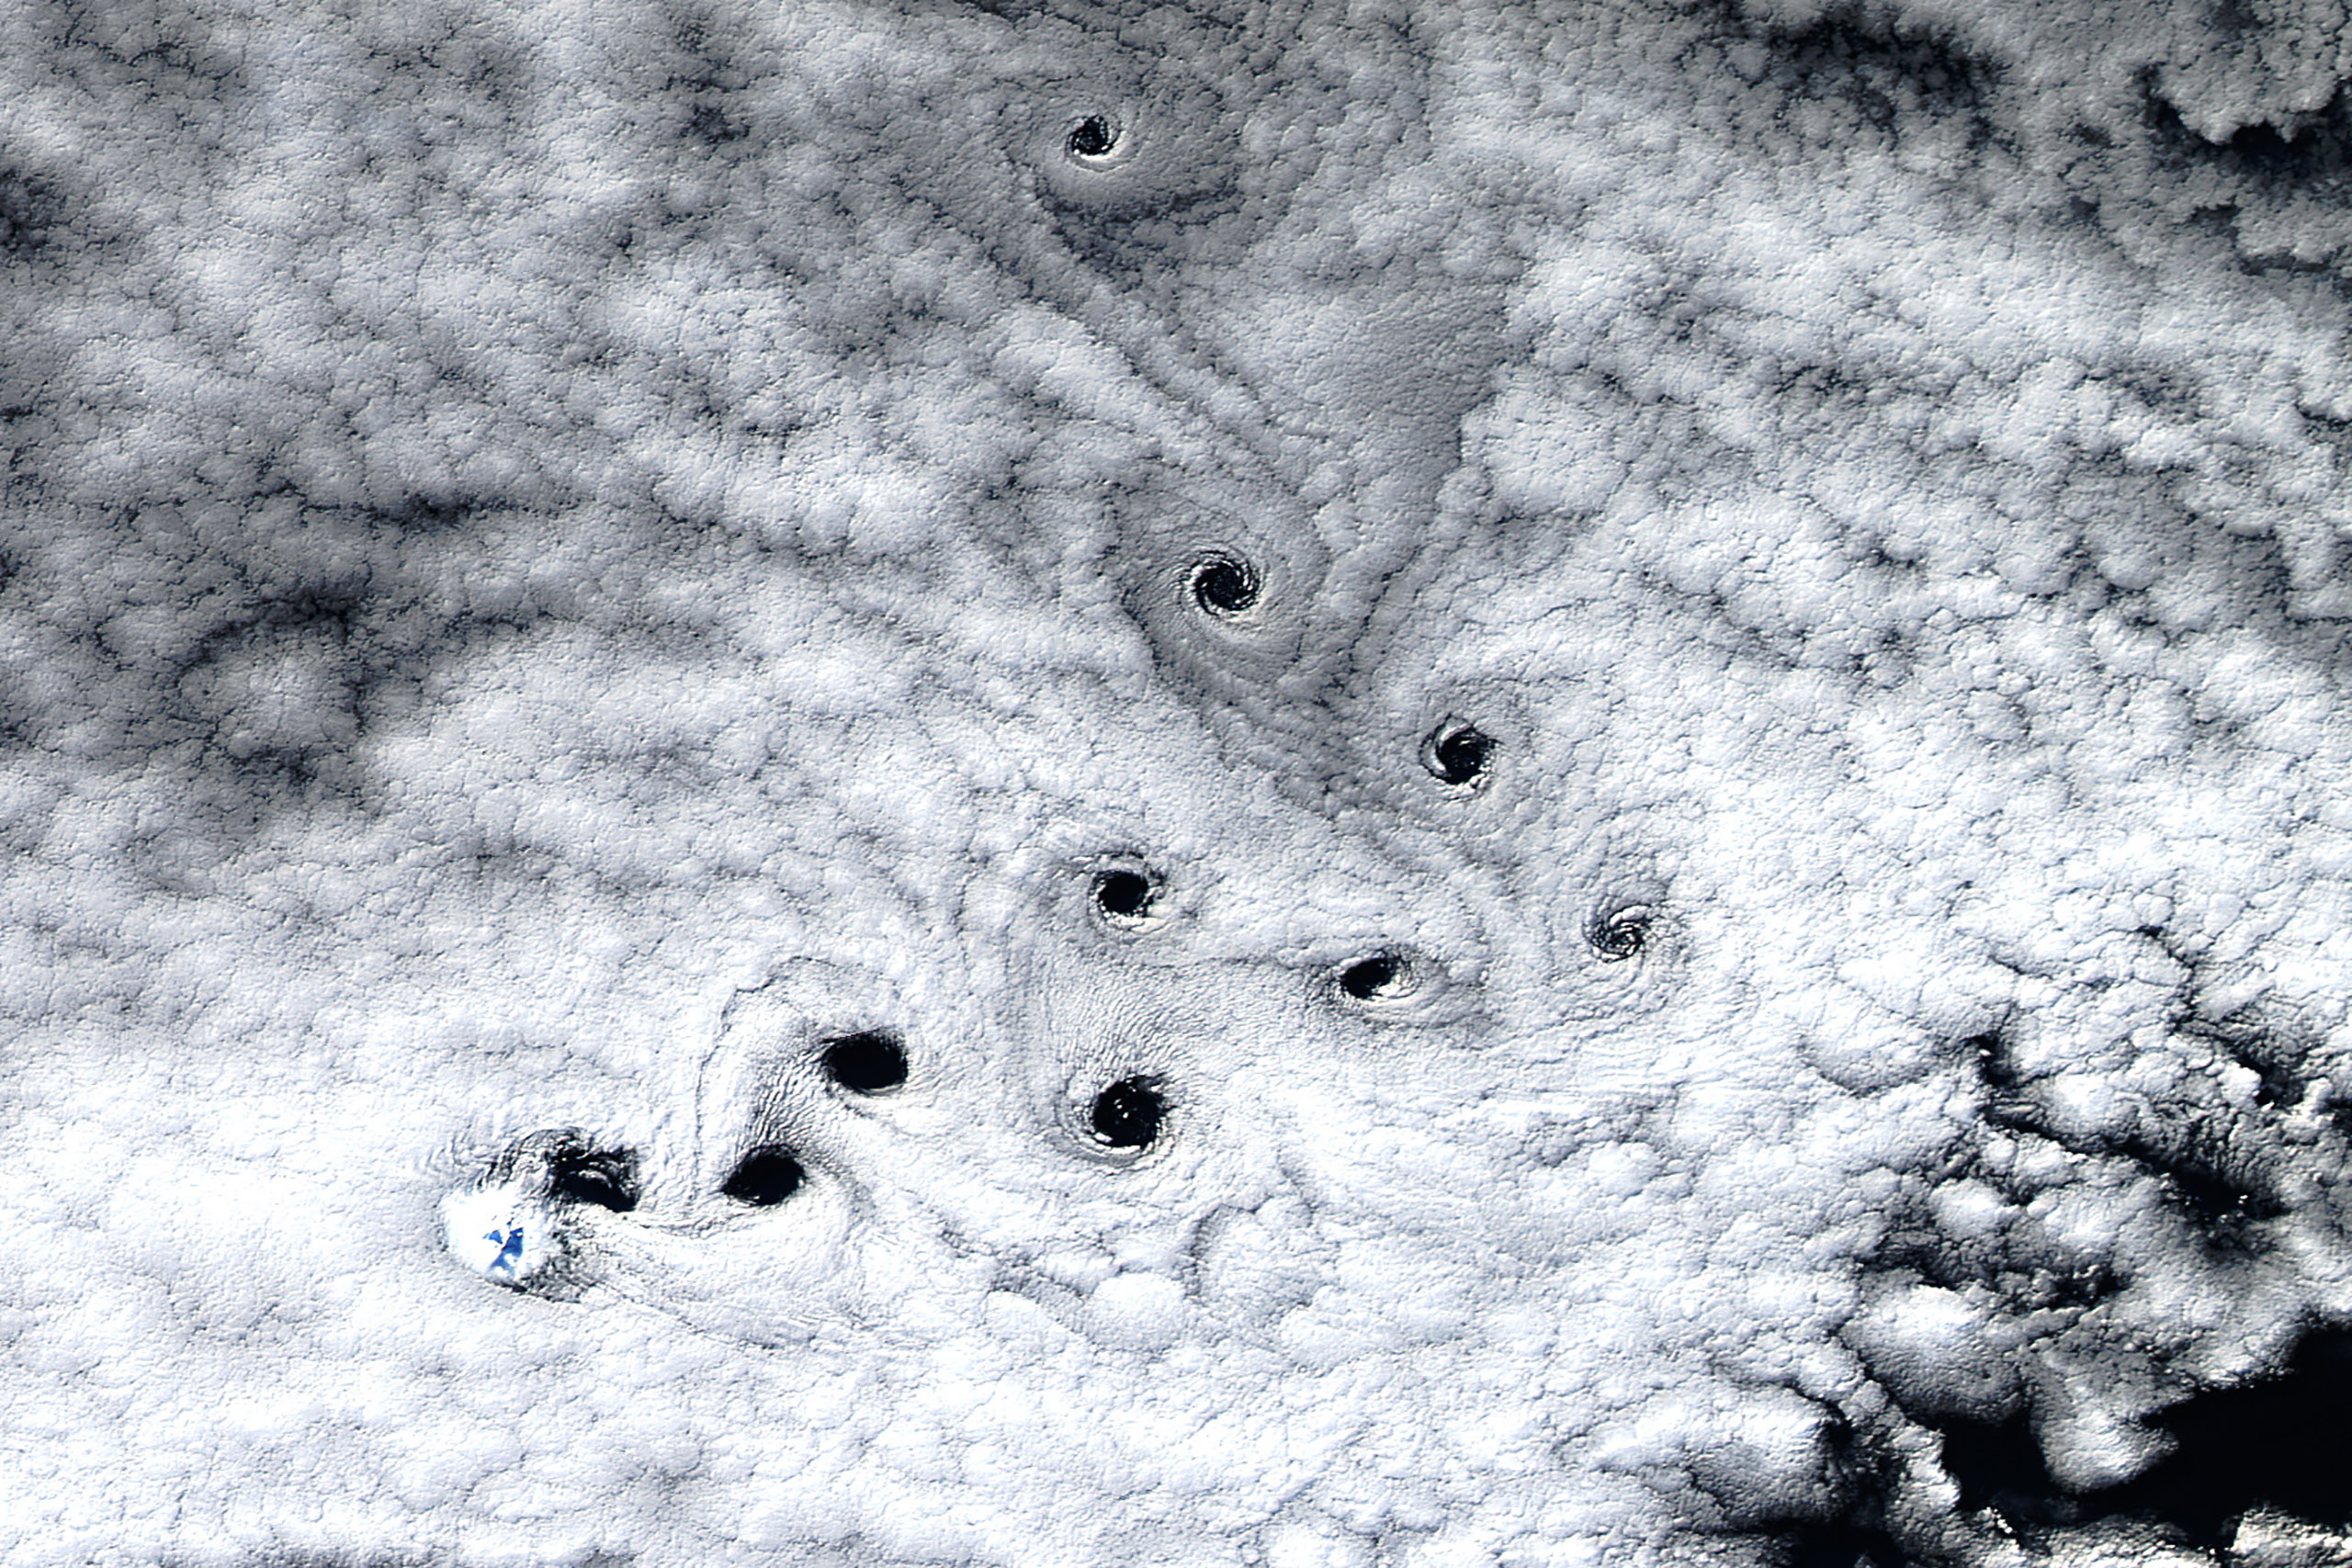 When the Operational Land Imager (OLI) on Landsat 8 captured this image of Heard Island, just the tip of Mawson Peak—the highest point on the island—was visible through the sheet of marine stratocumulus clouds swirling over this part of the Furious Fifties, May 3, 2016.